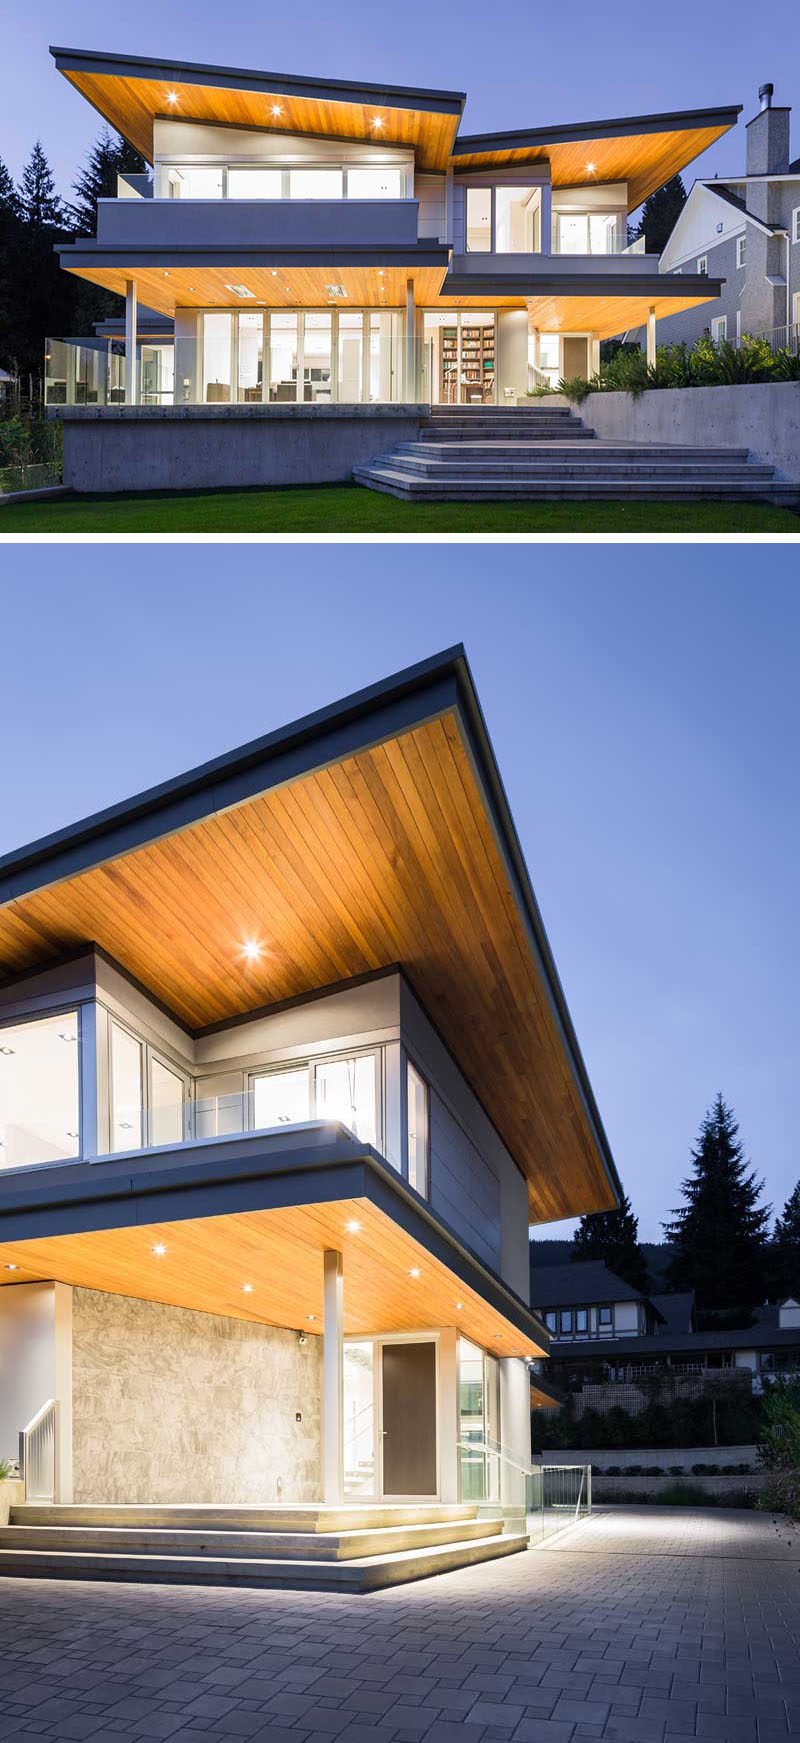 20 Awesome Examples Of Pacific Northwest Architecture // The wood butterfly roof above the concrete house, coupled with the dramatic lighting, make this Pacific Northwest home look dramatic and modern.